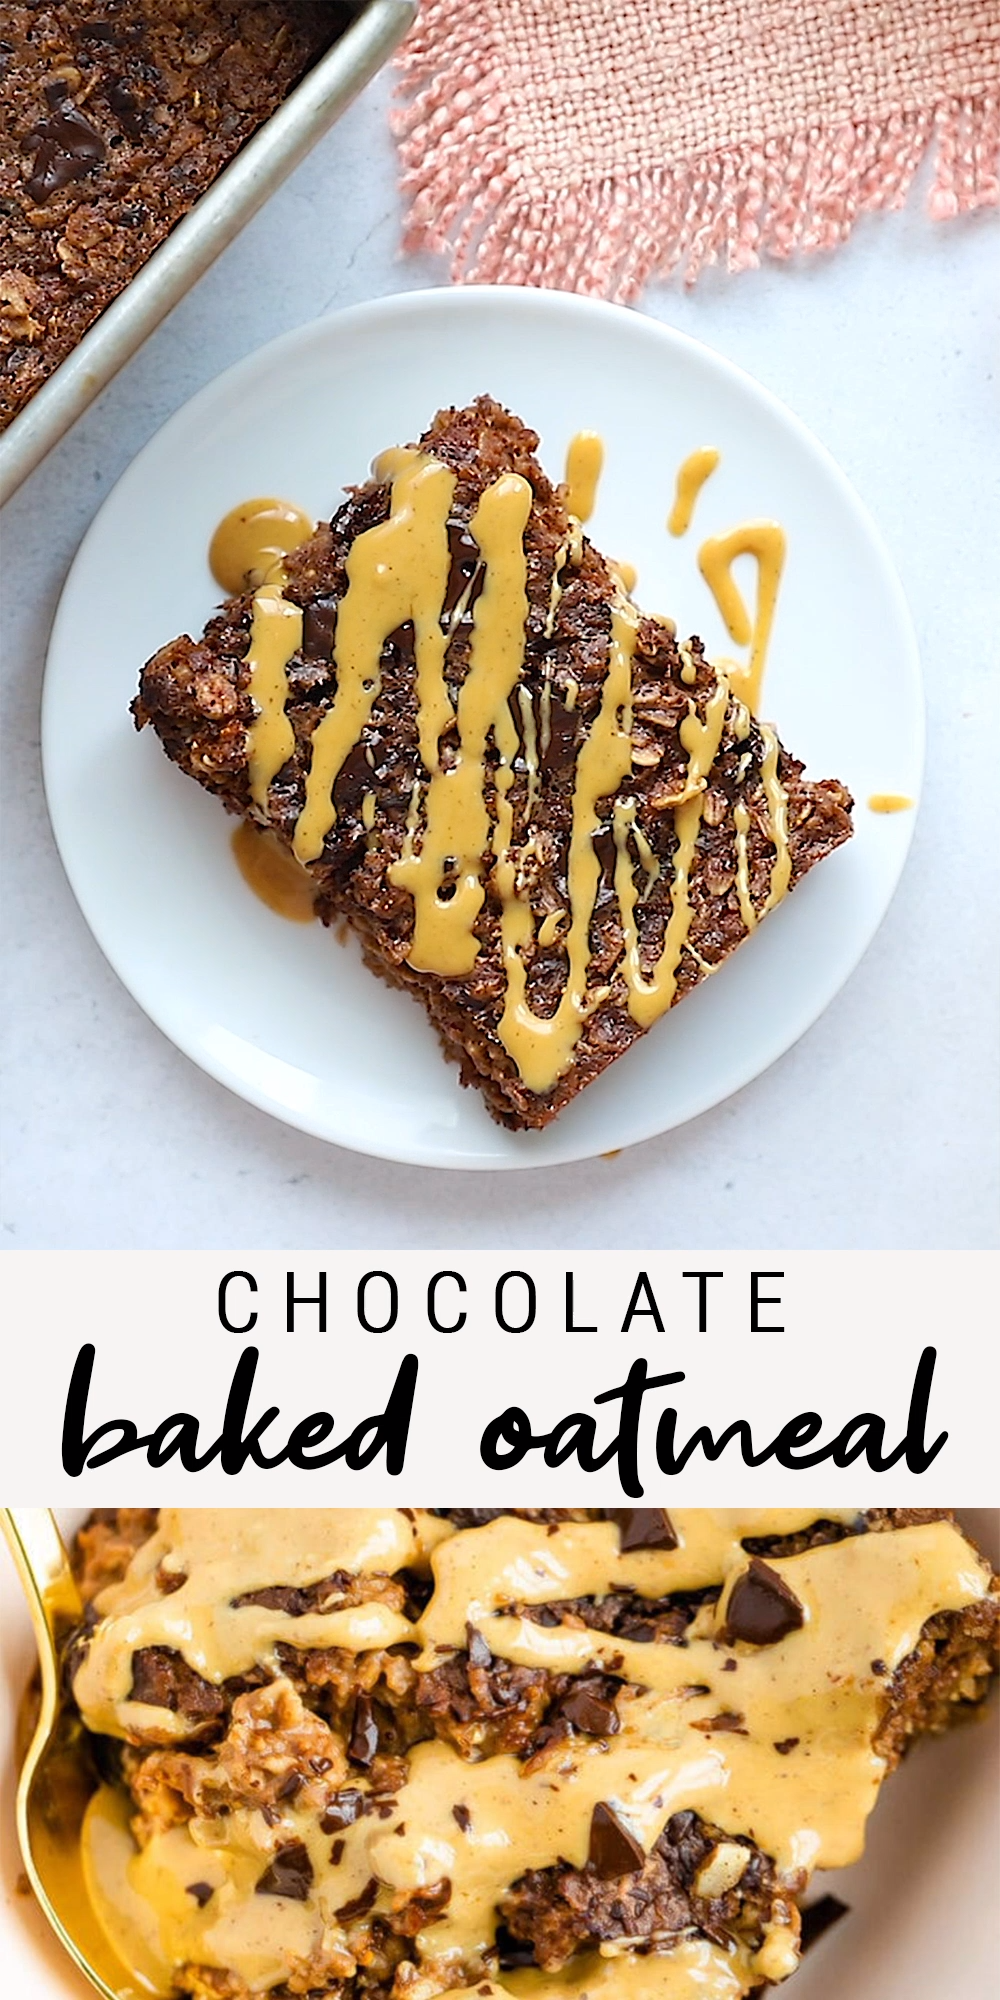 Photo of Healthy Chocolate Peanut Butter Baked Oatmeal | Vegan + Gluten-Free